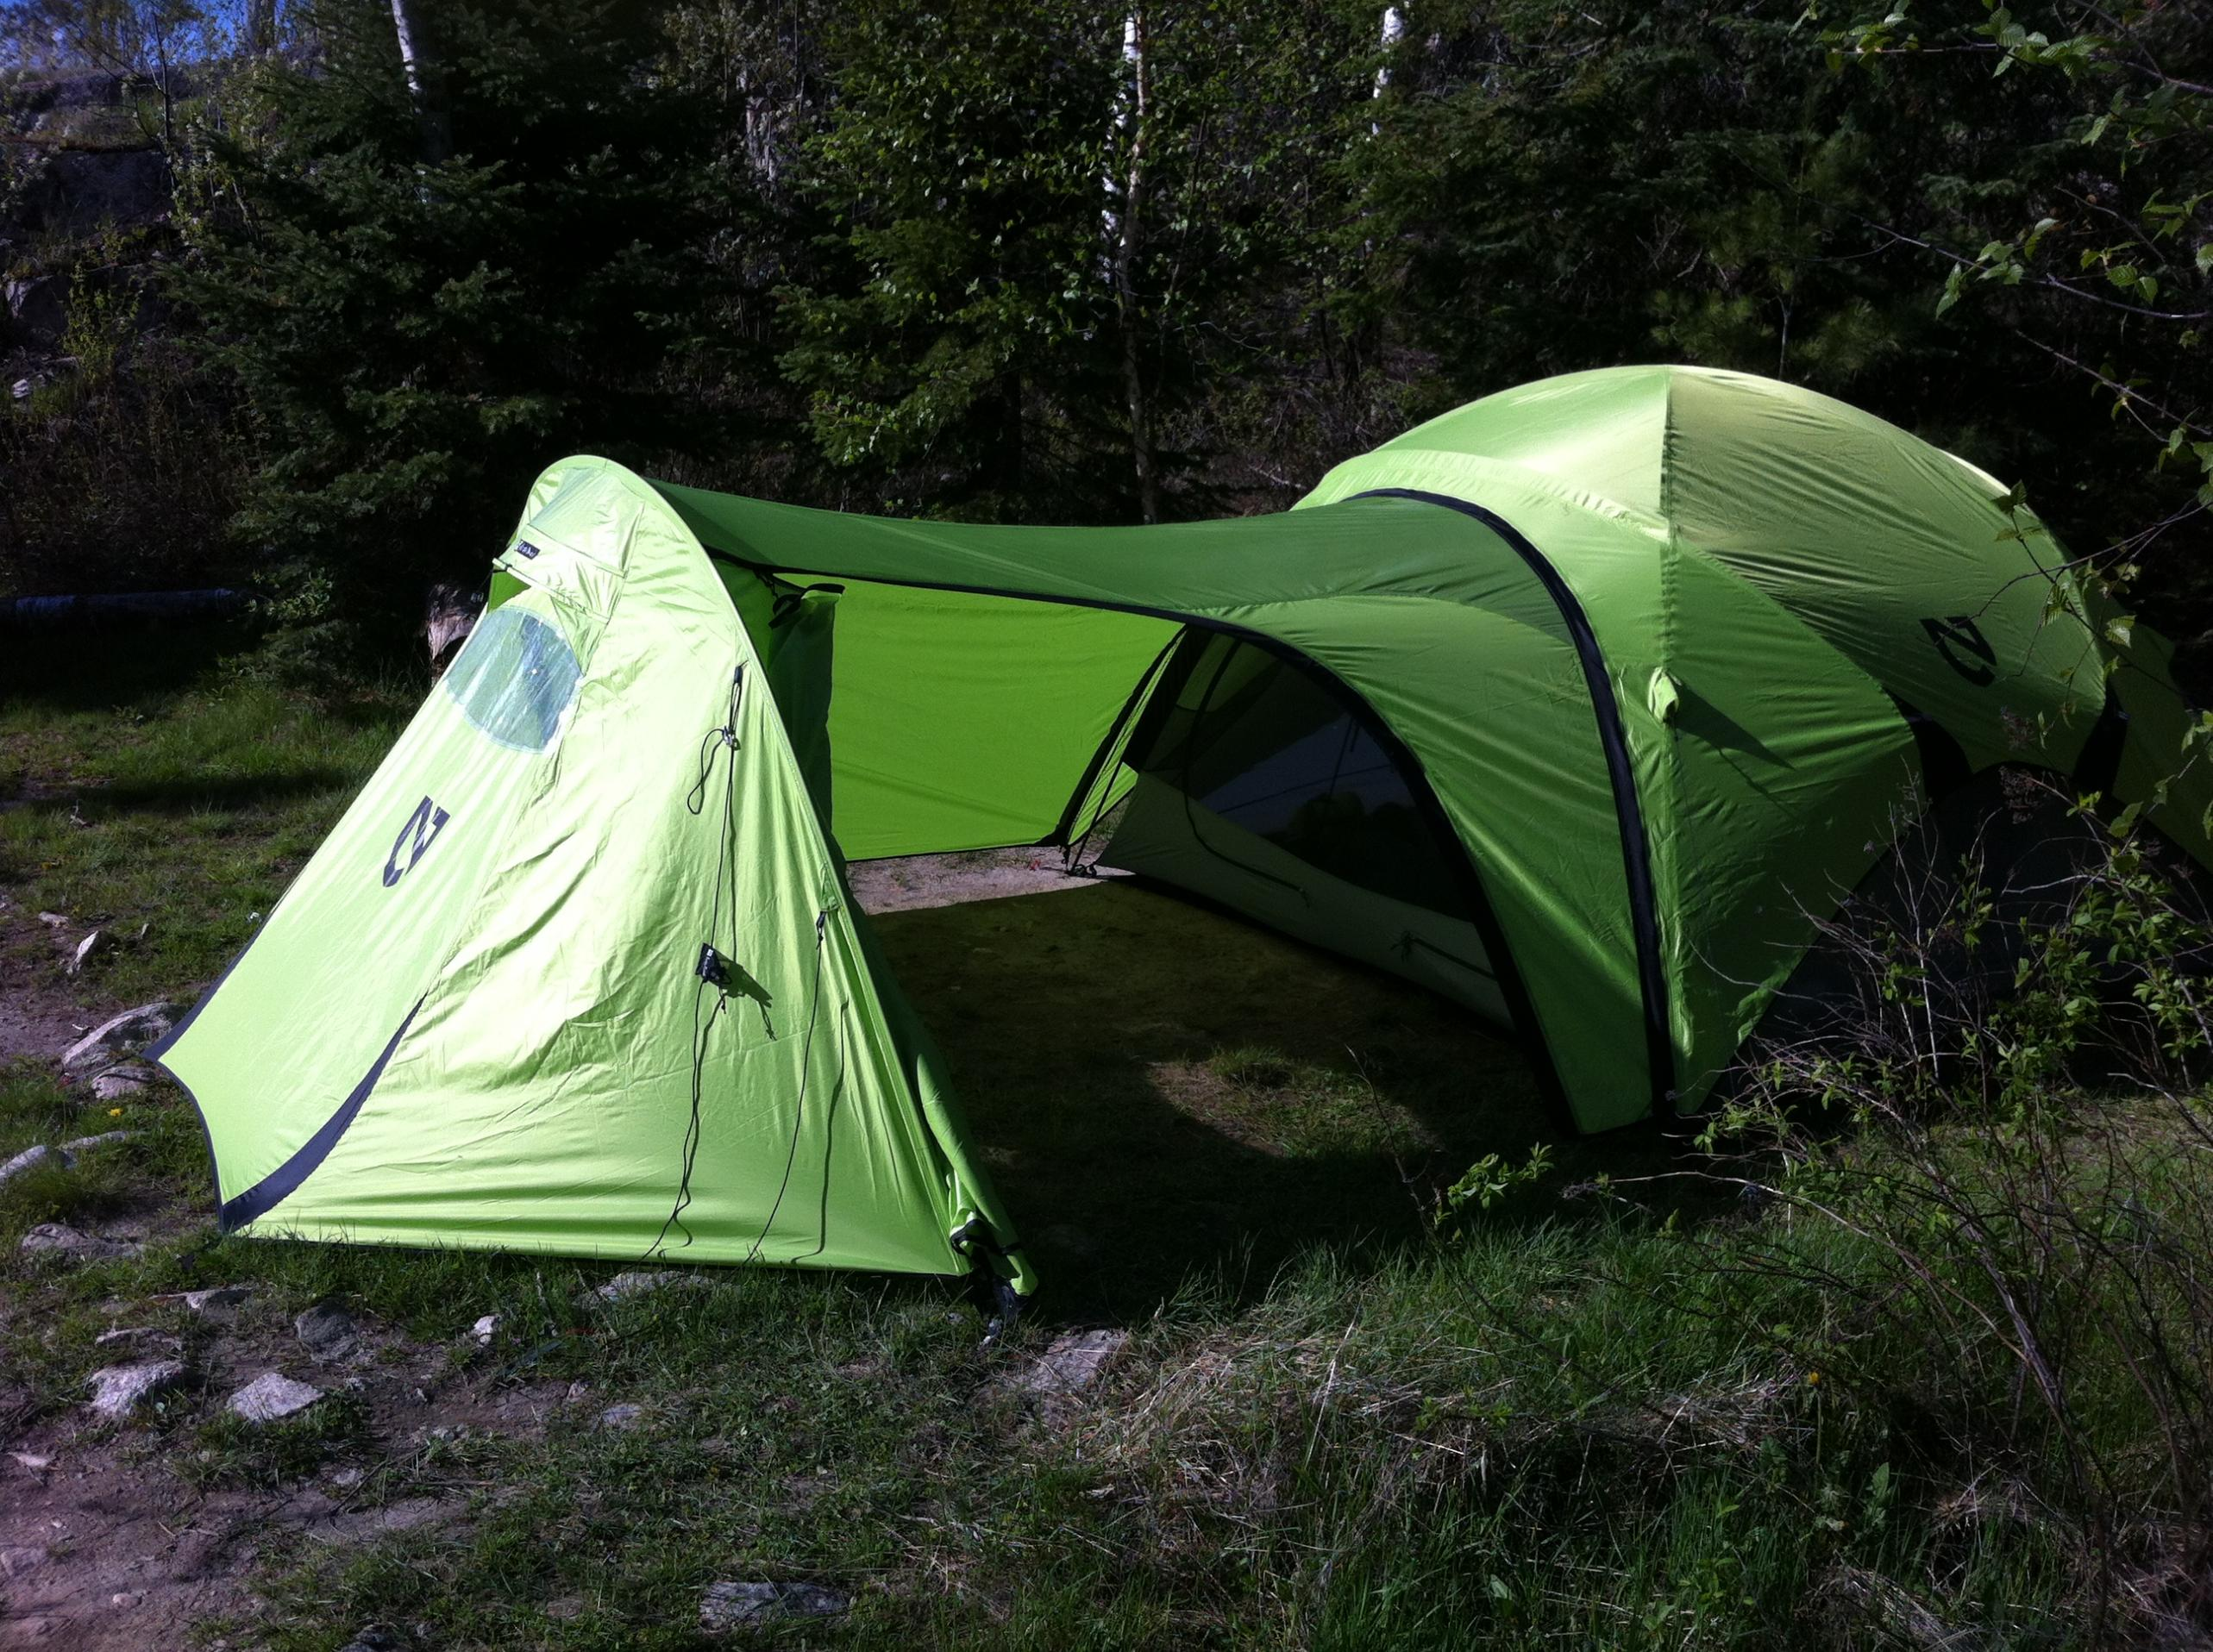 quote wetcanoedog   if you want a tent with a real garage check out the Hilliberg tent site.  & BWCA Tent w/ large garage vestibule Boundary Waters Gear Forum